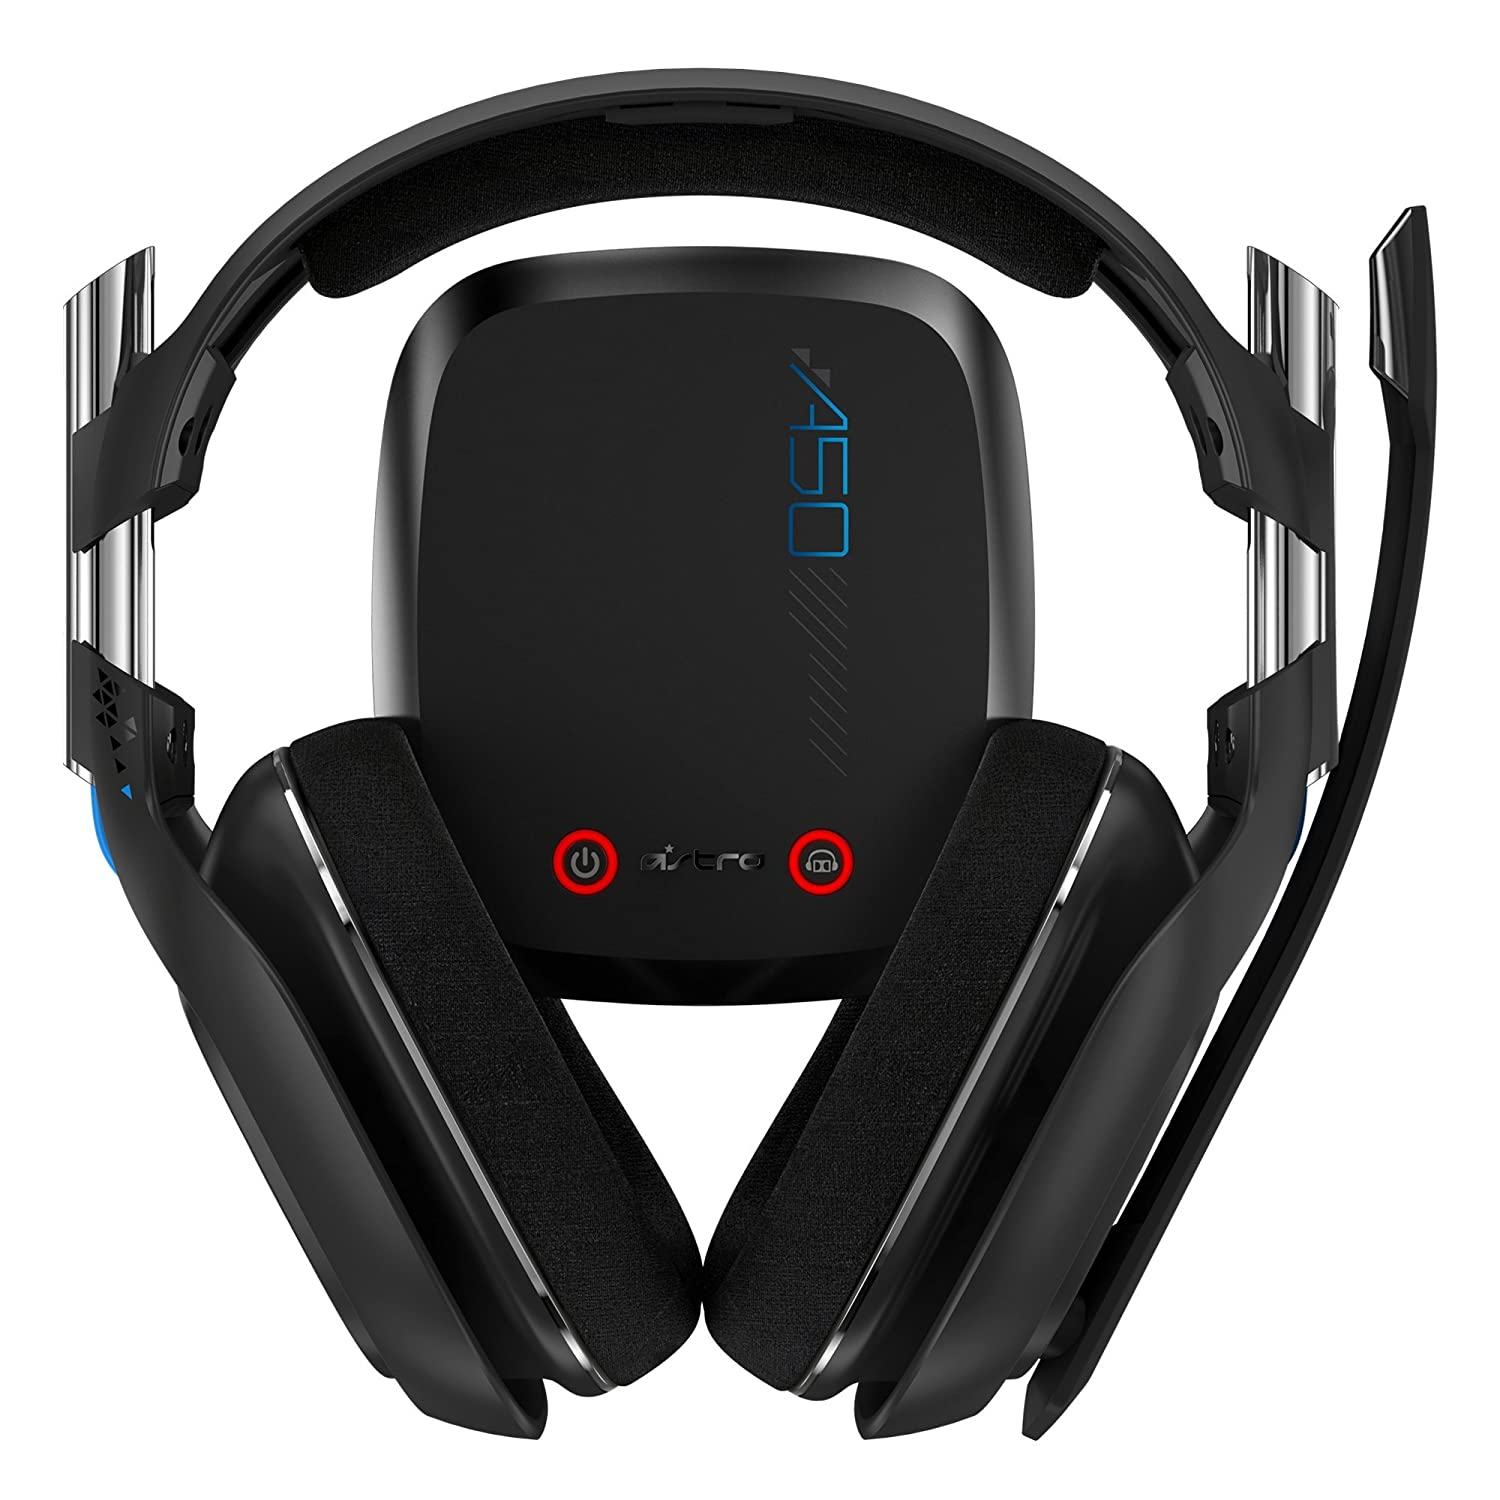 The ASTRO Gaming A50 is one of the top ps4 headsets on this list.